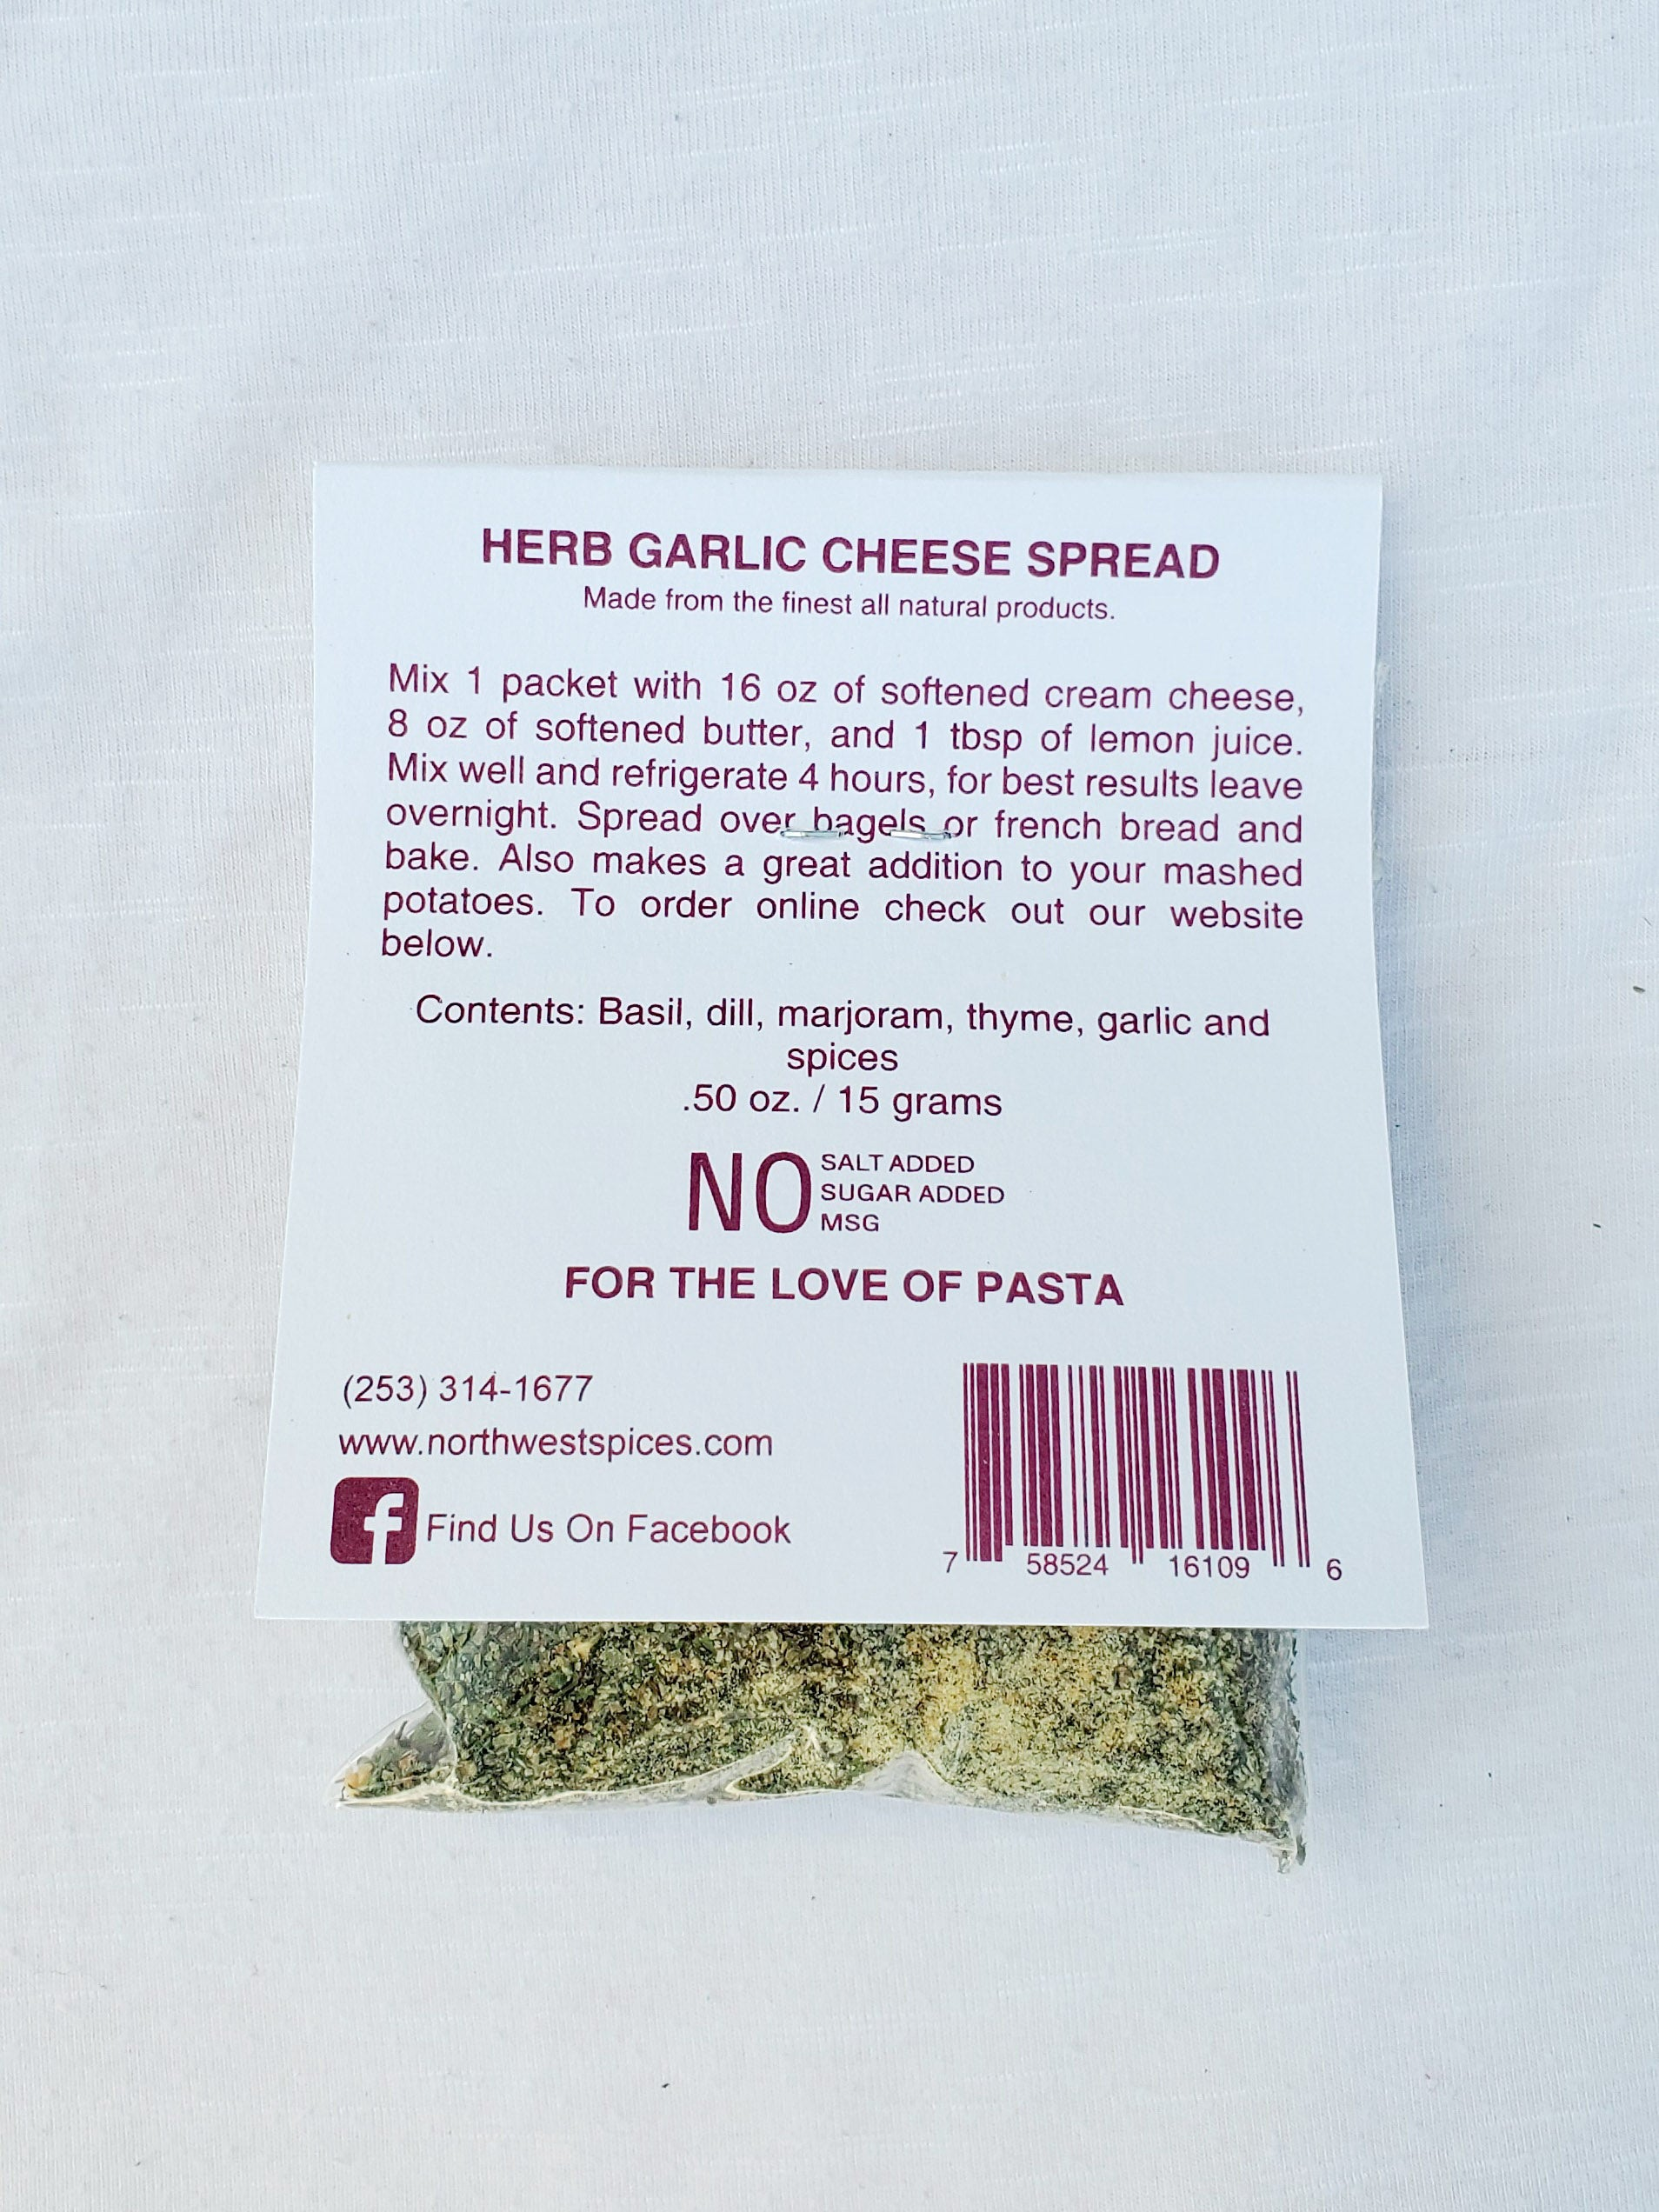 Herb Garlic Cheese Seasoning Blend by Northwest Spices contains, Basil , Dill, Marjoram, Thyme, Garlic and spices.